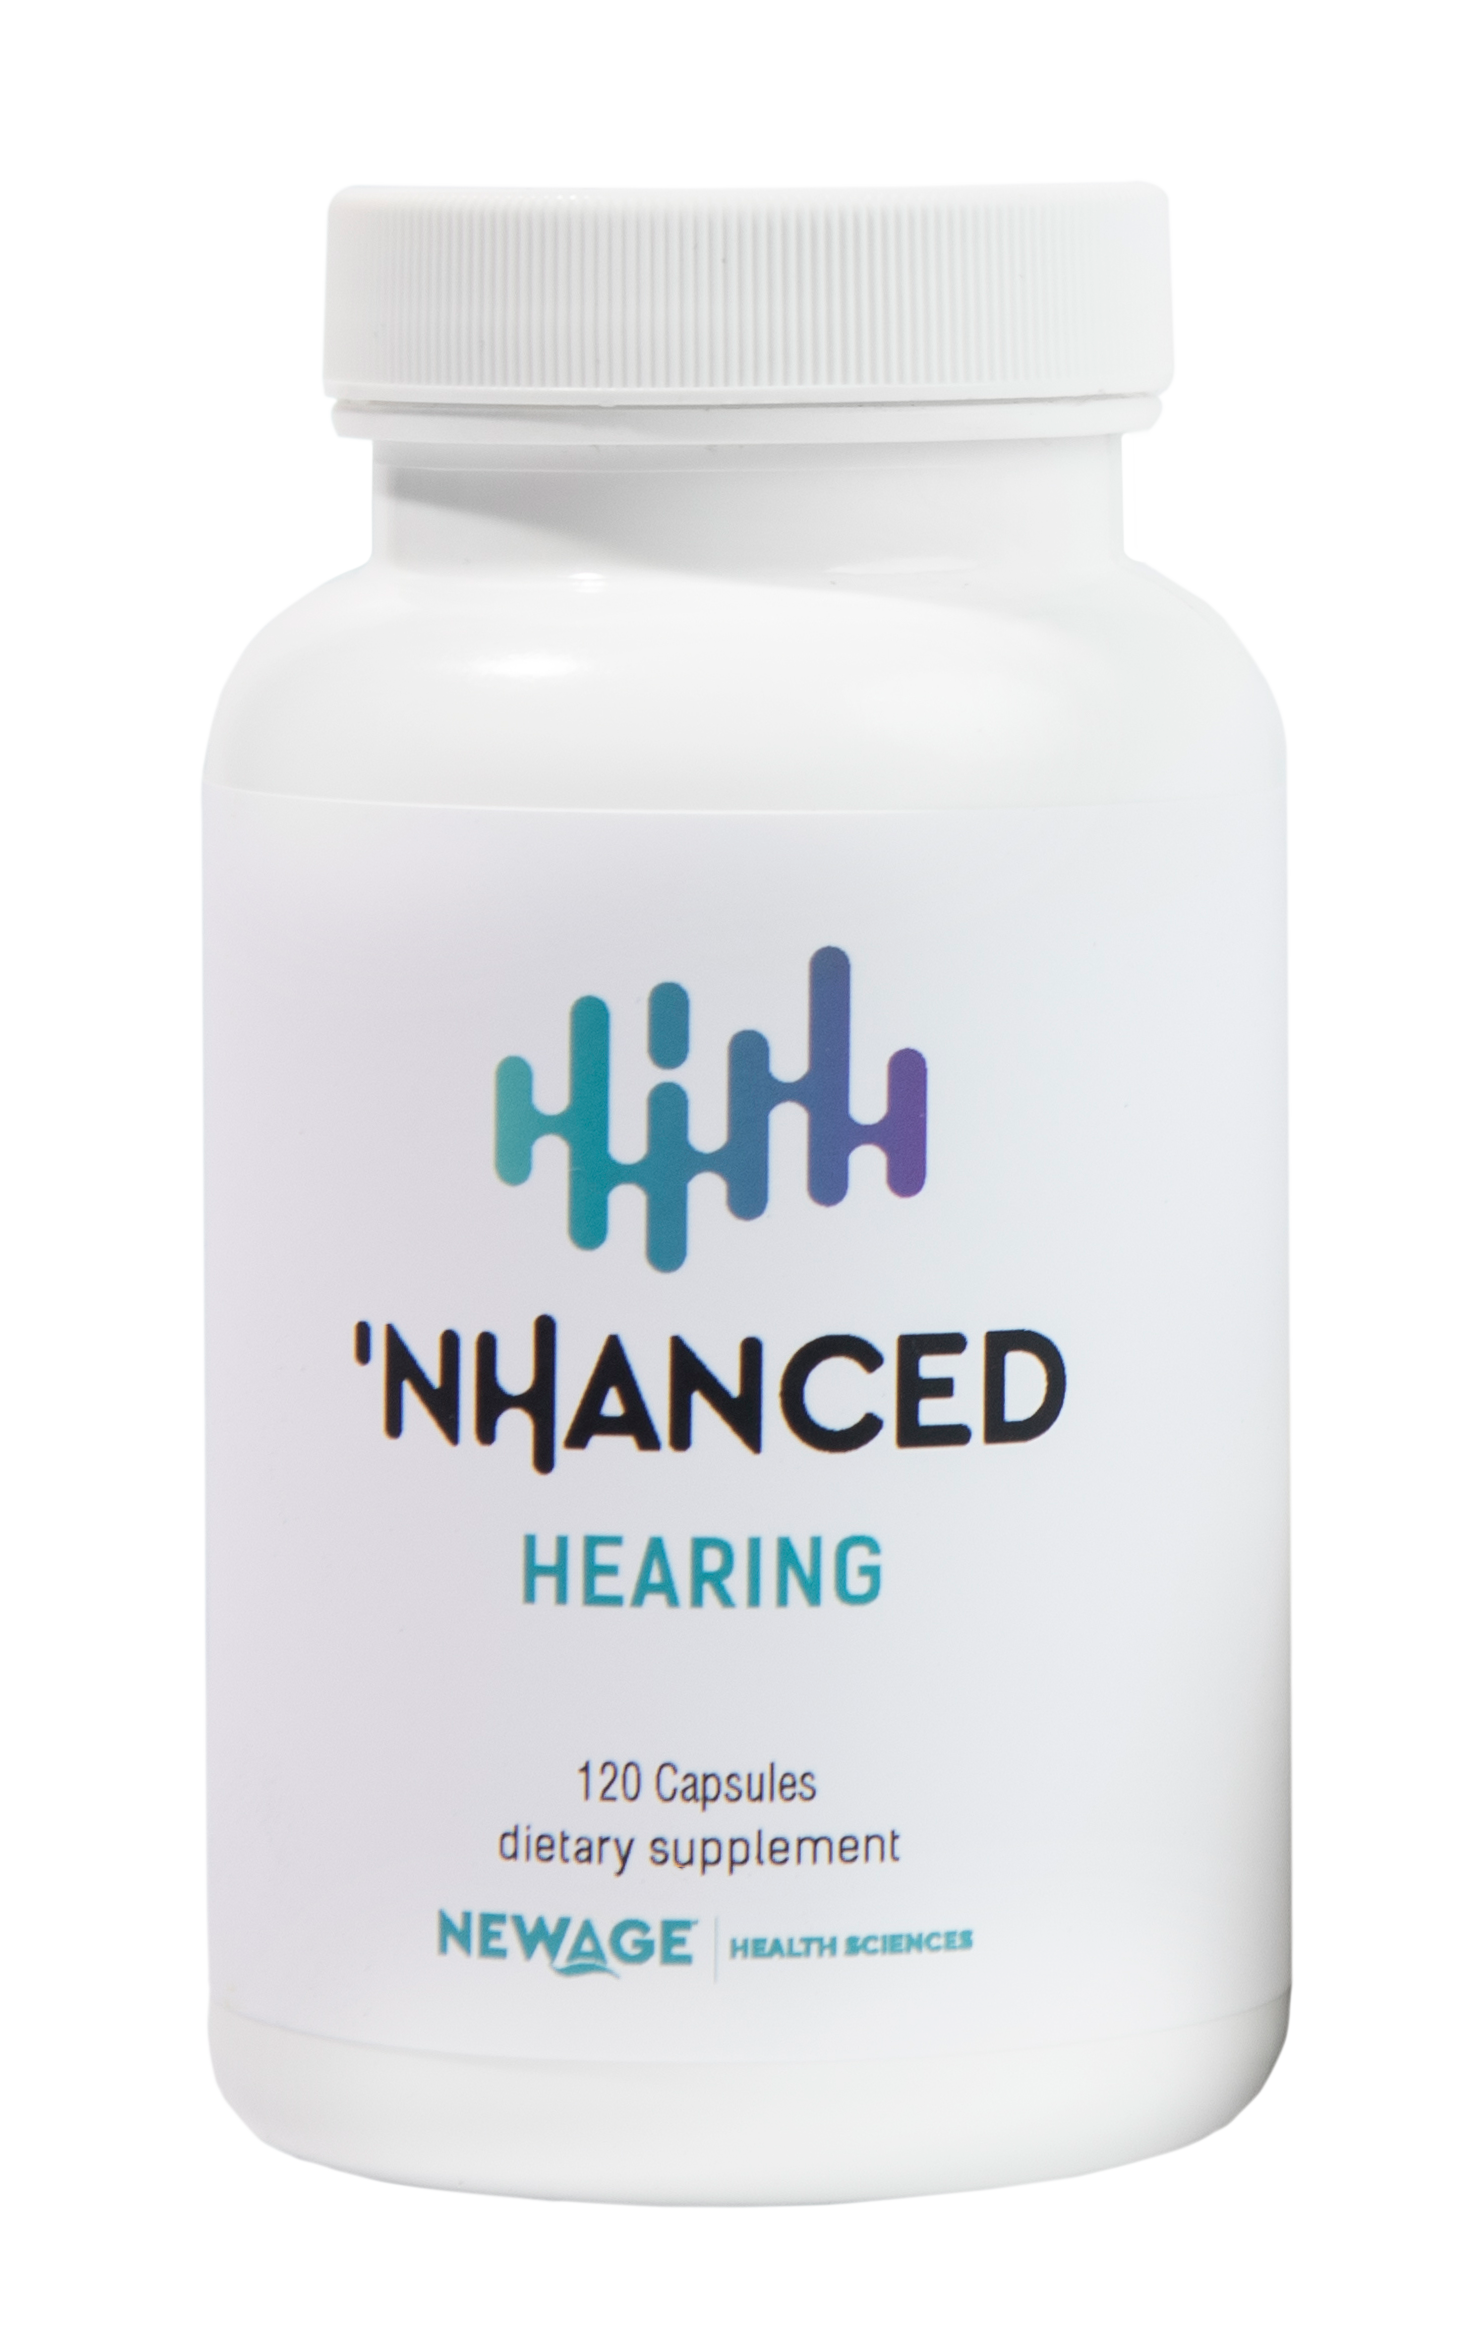 'NHANCED Hearing